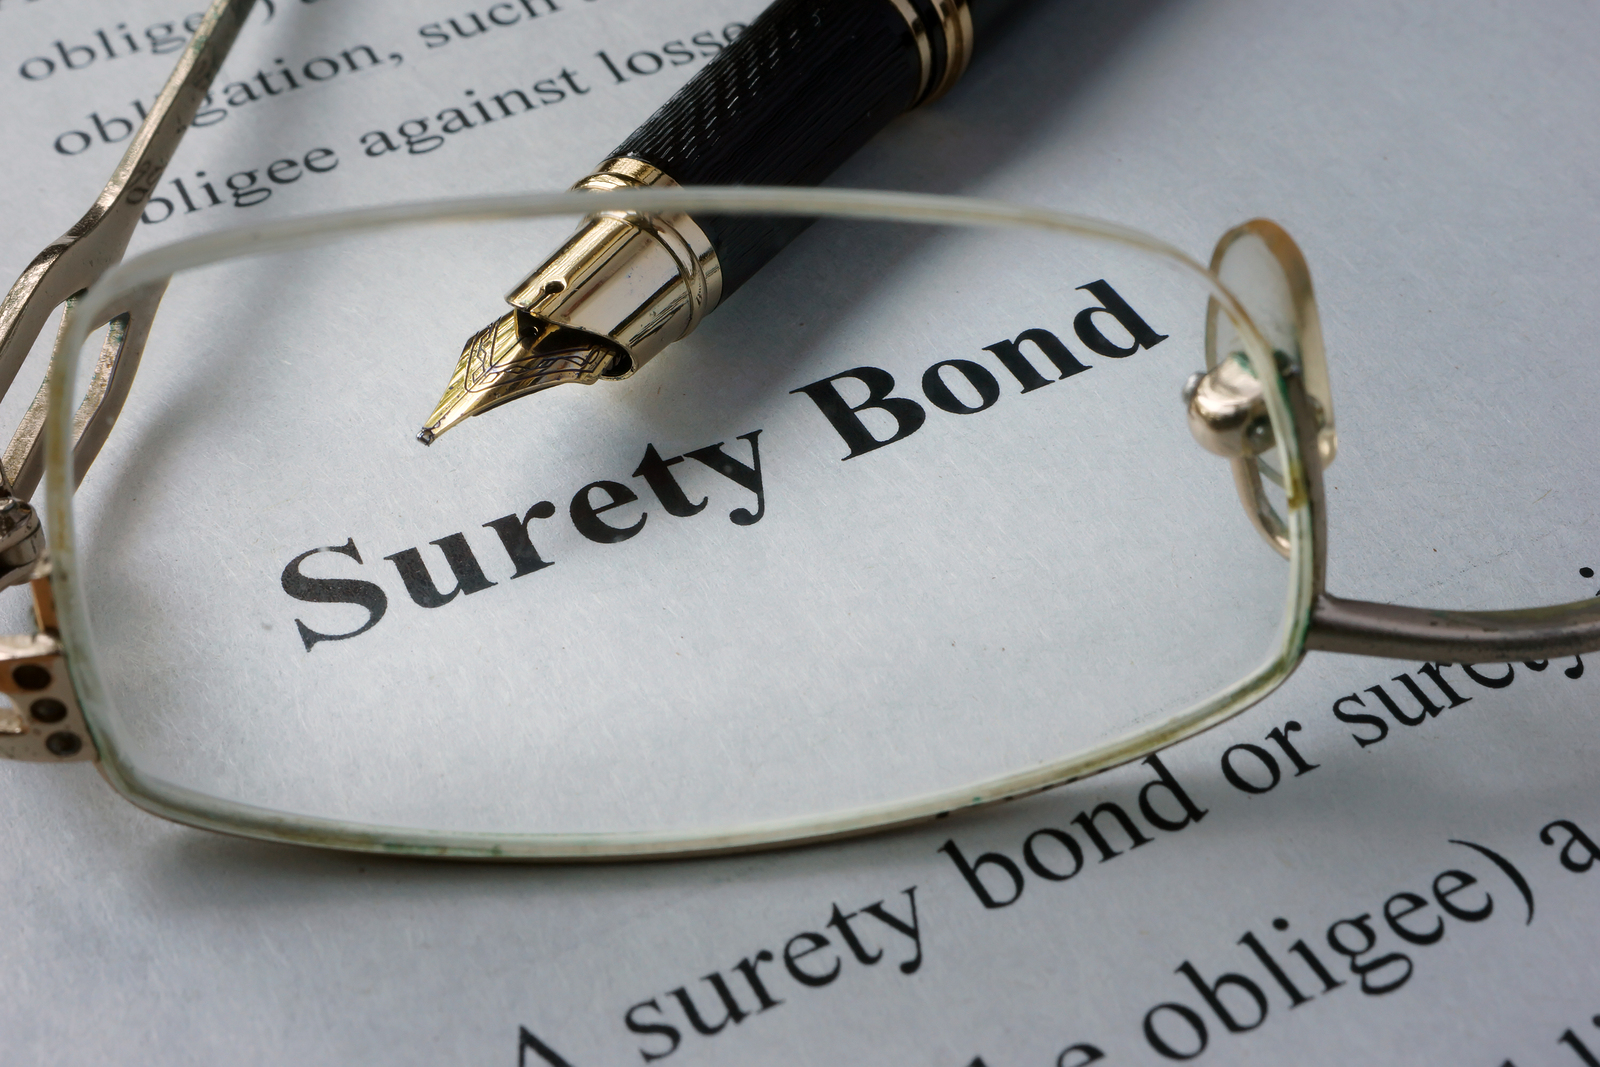 how viking bond service defines surety bonds in 2018 - performance